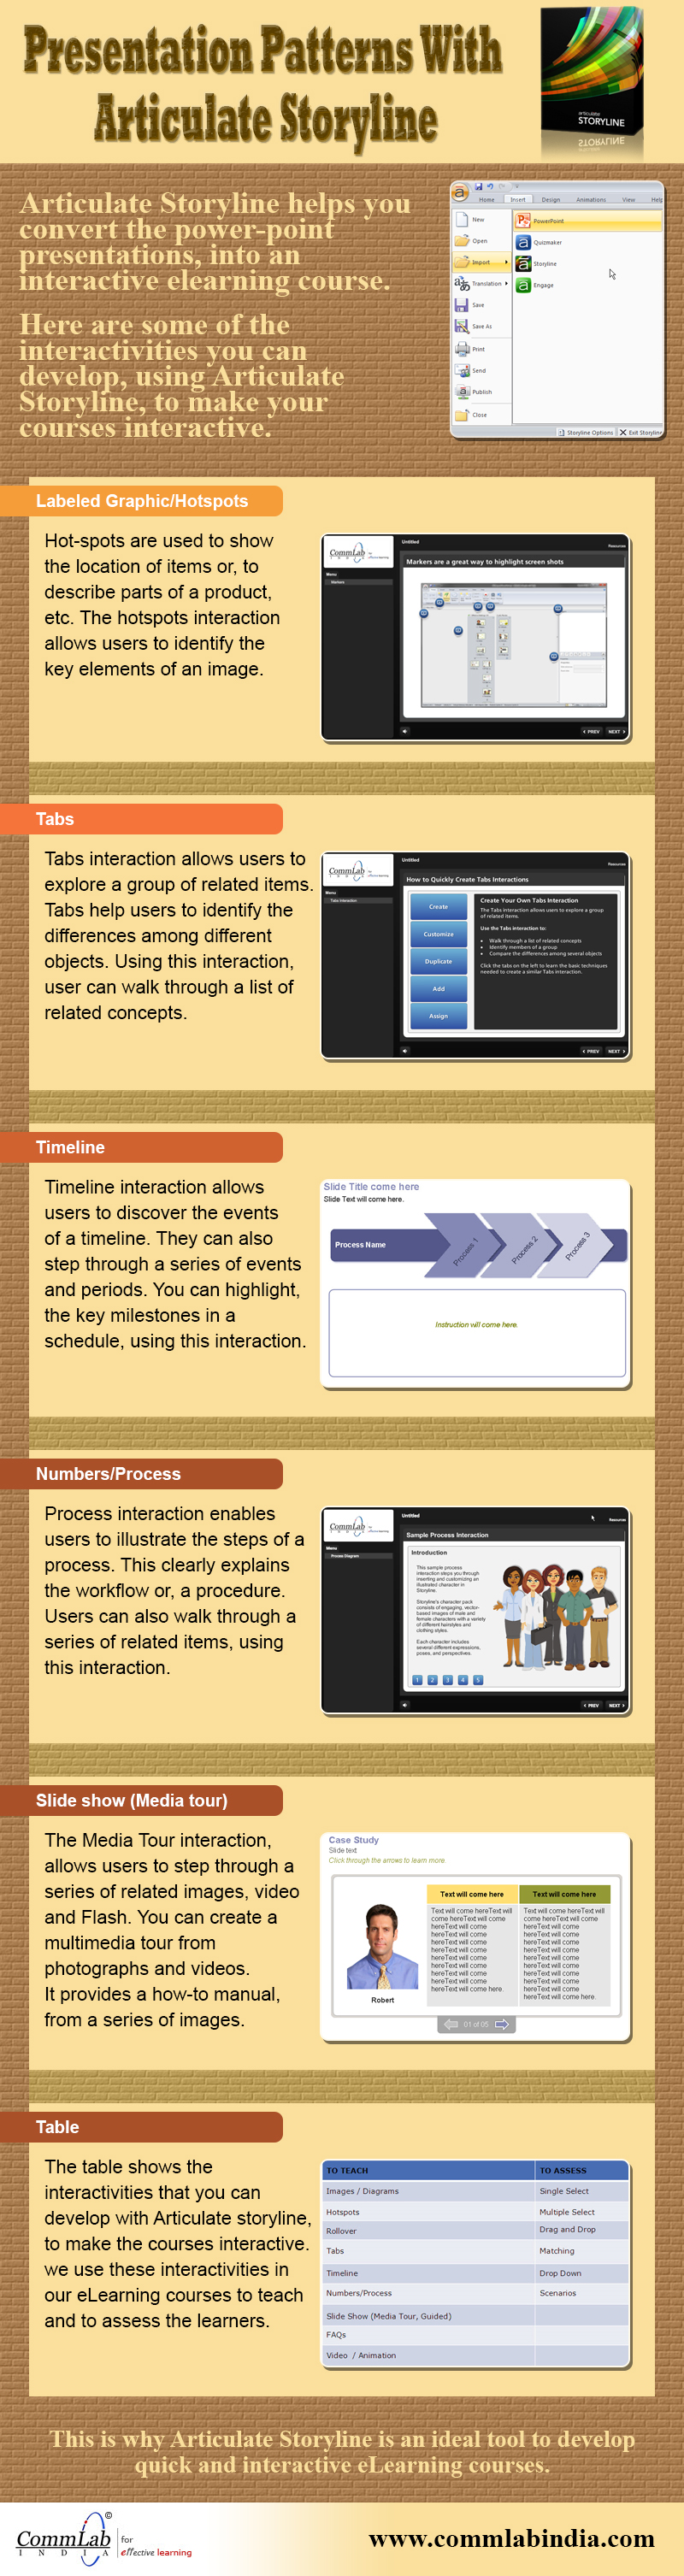 Presentation Patterns with Articulate Storyline - An Infographic